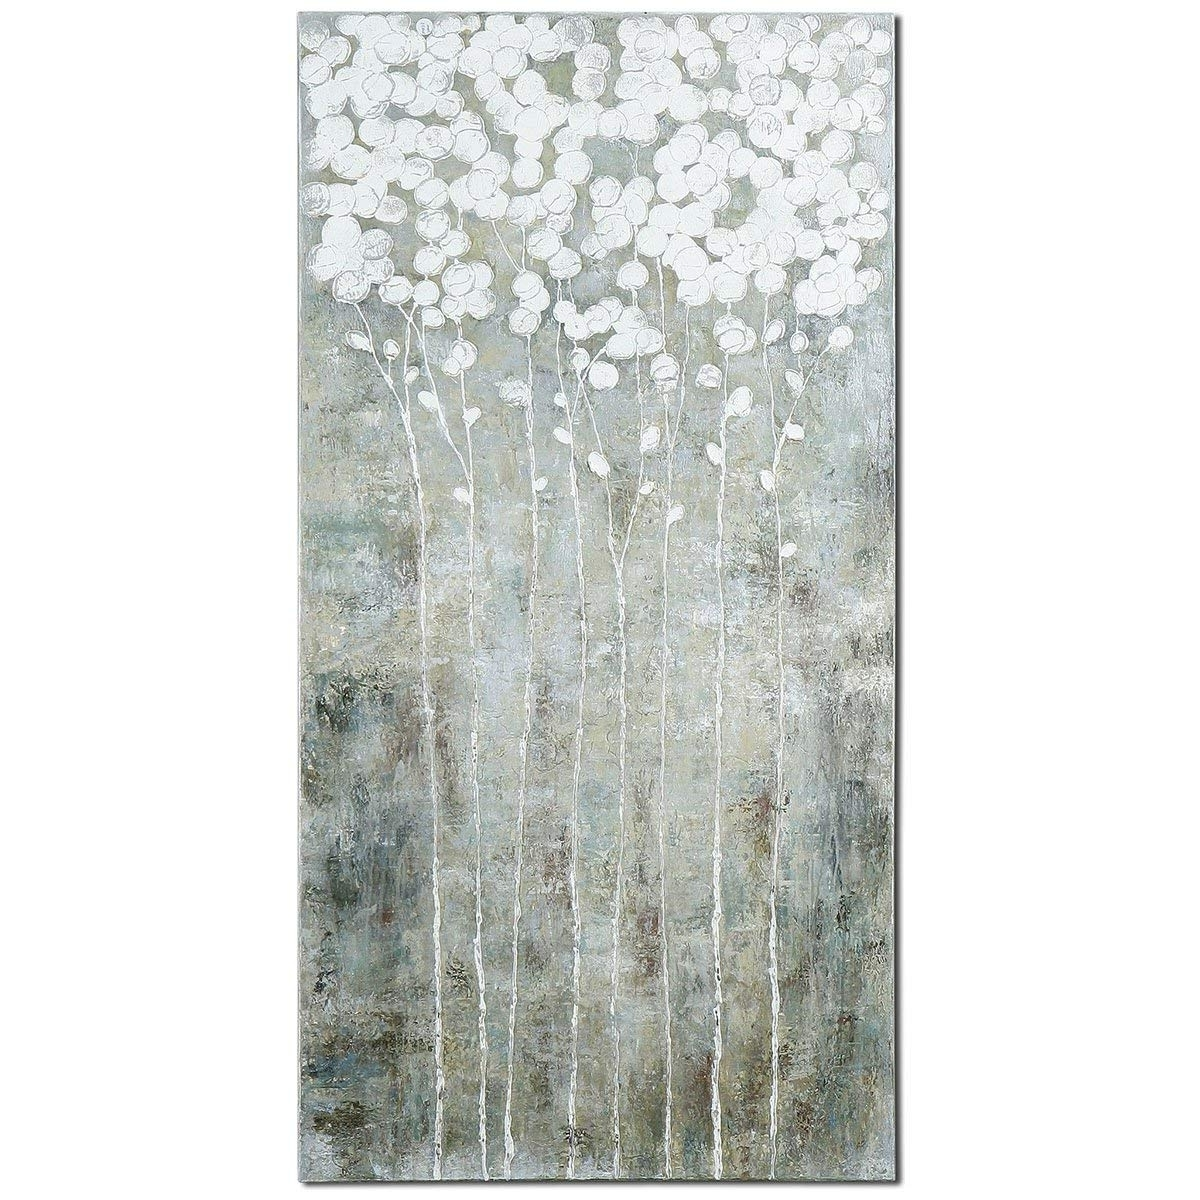 Amazon: Uttermost 41908 Cotton Florals Wall Art: Chandeliers Pertaining To Most Recently Released Uttermost Wall Art (View 3 of 15)